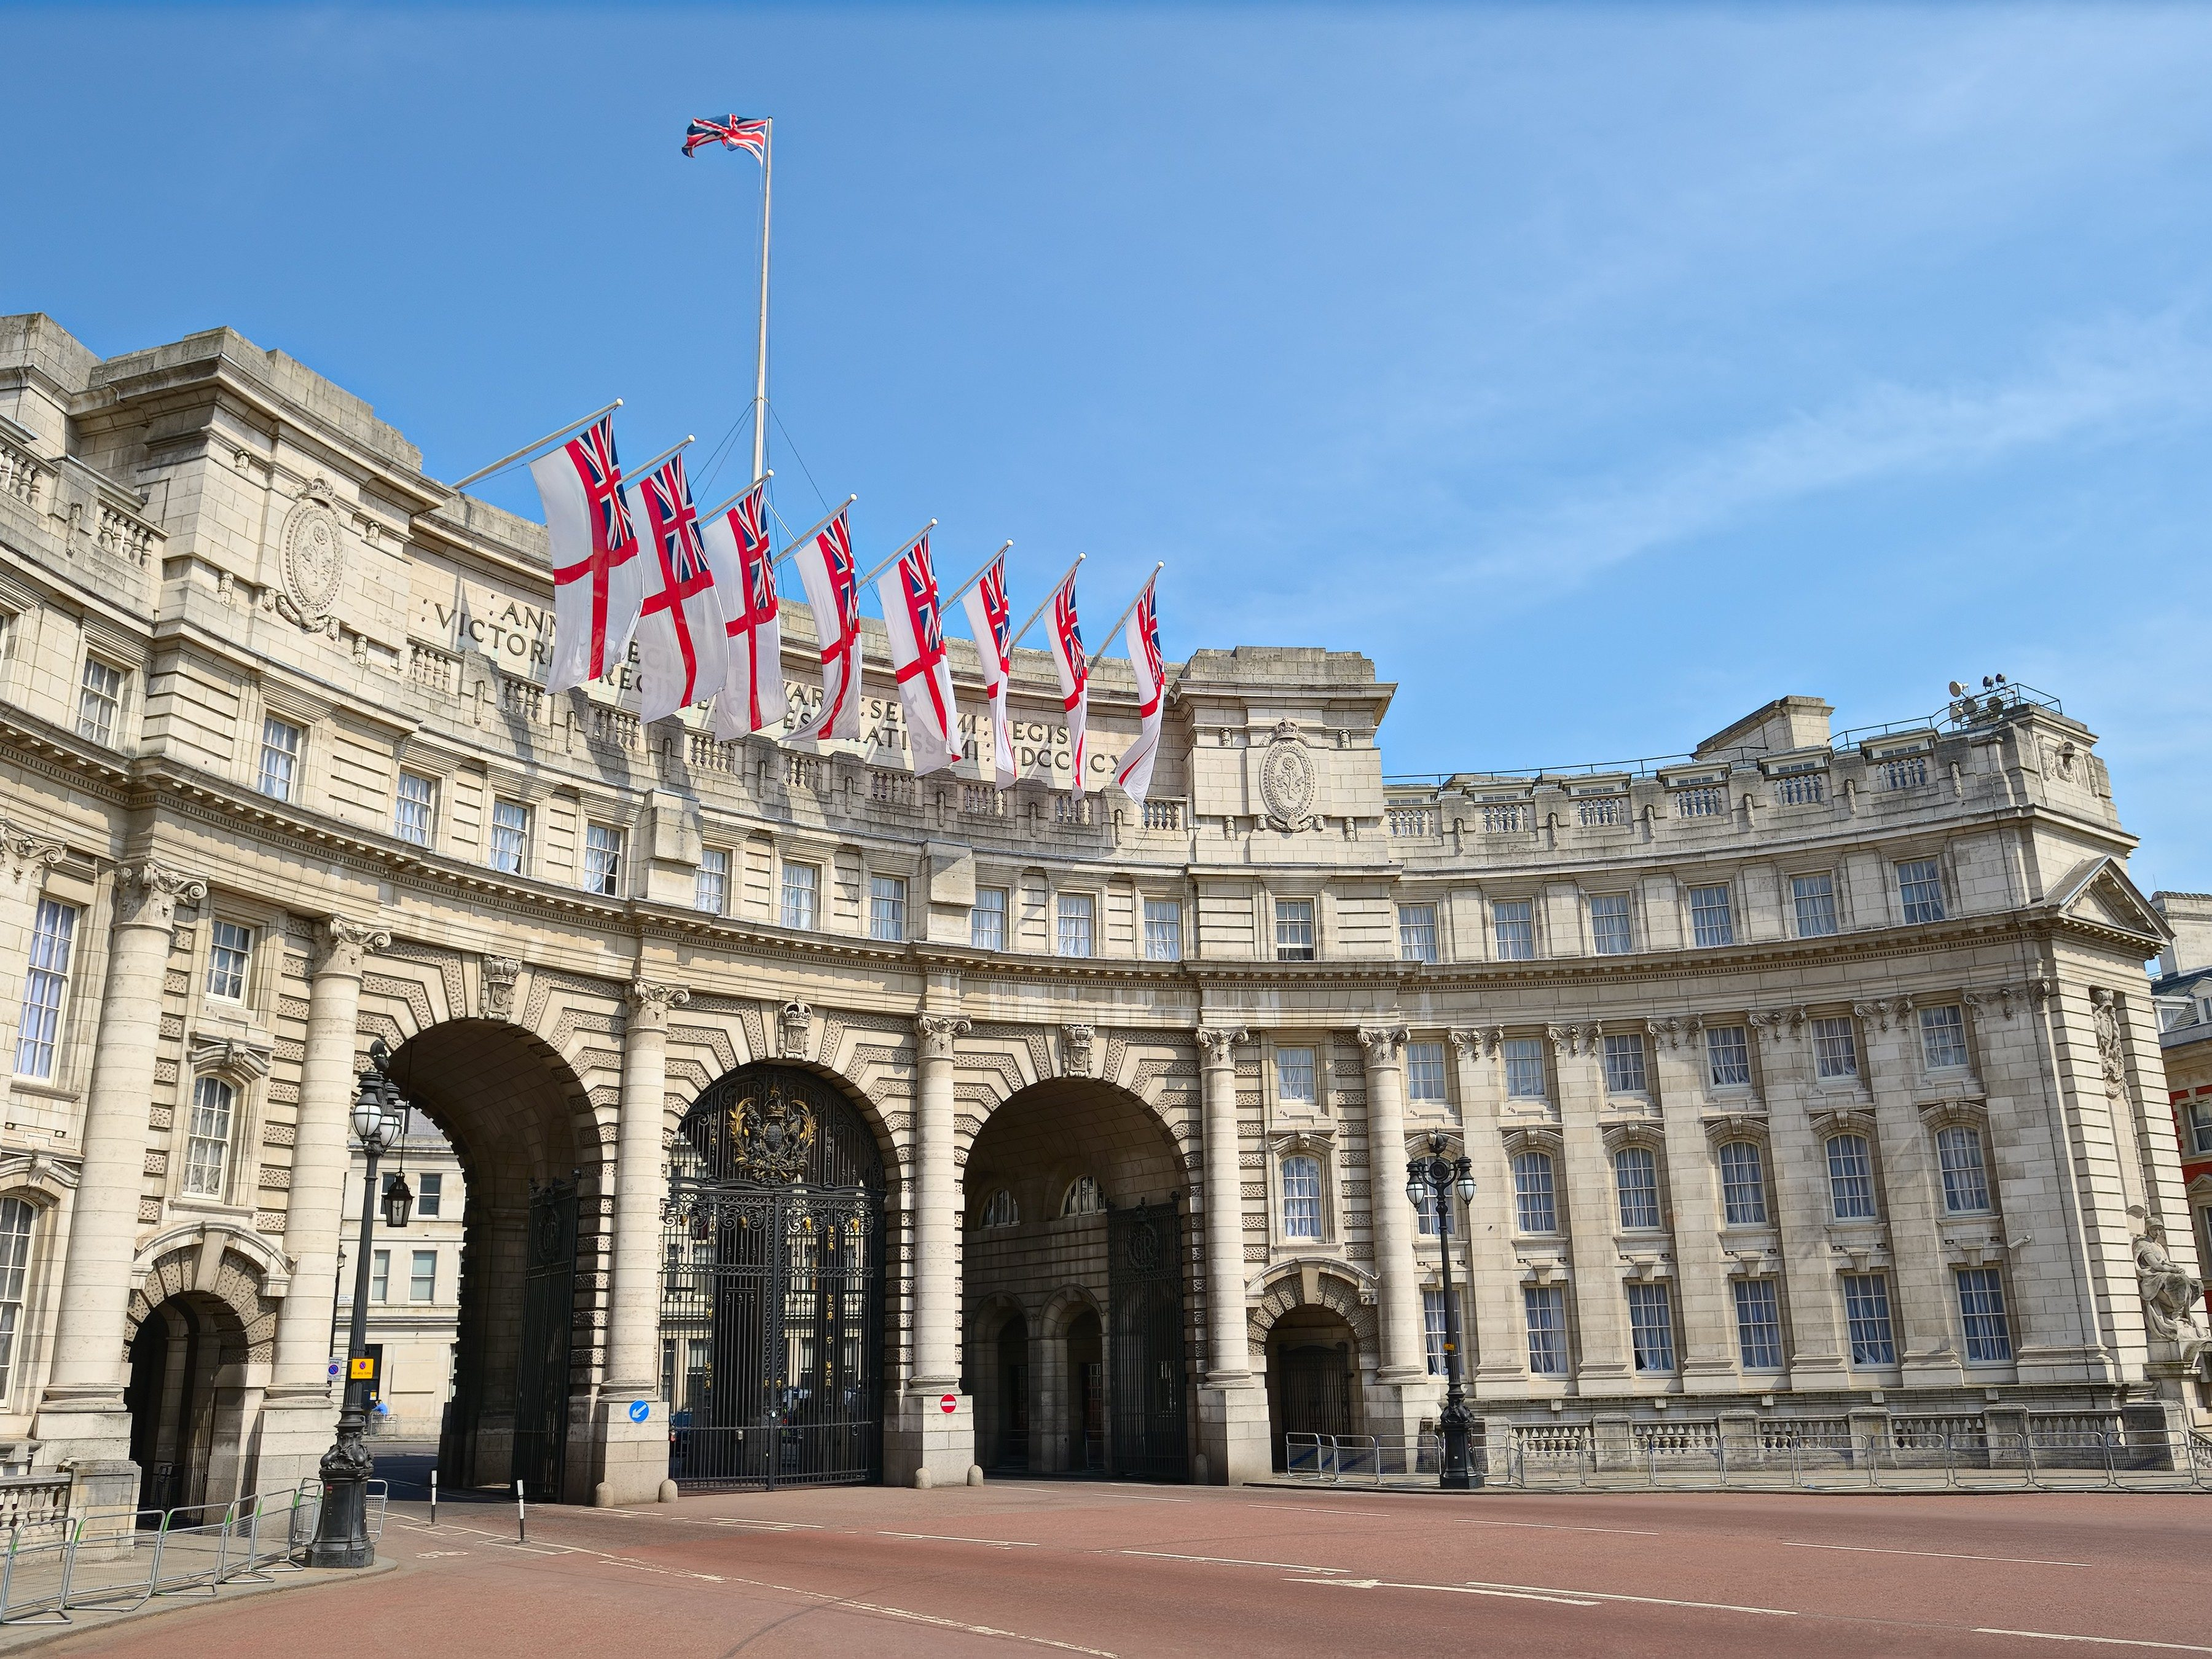 35. Admiralty Arch